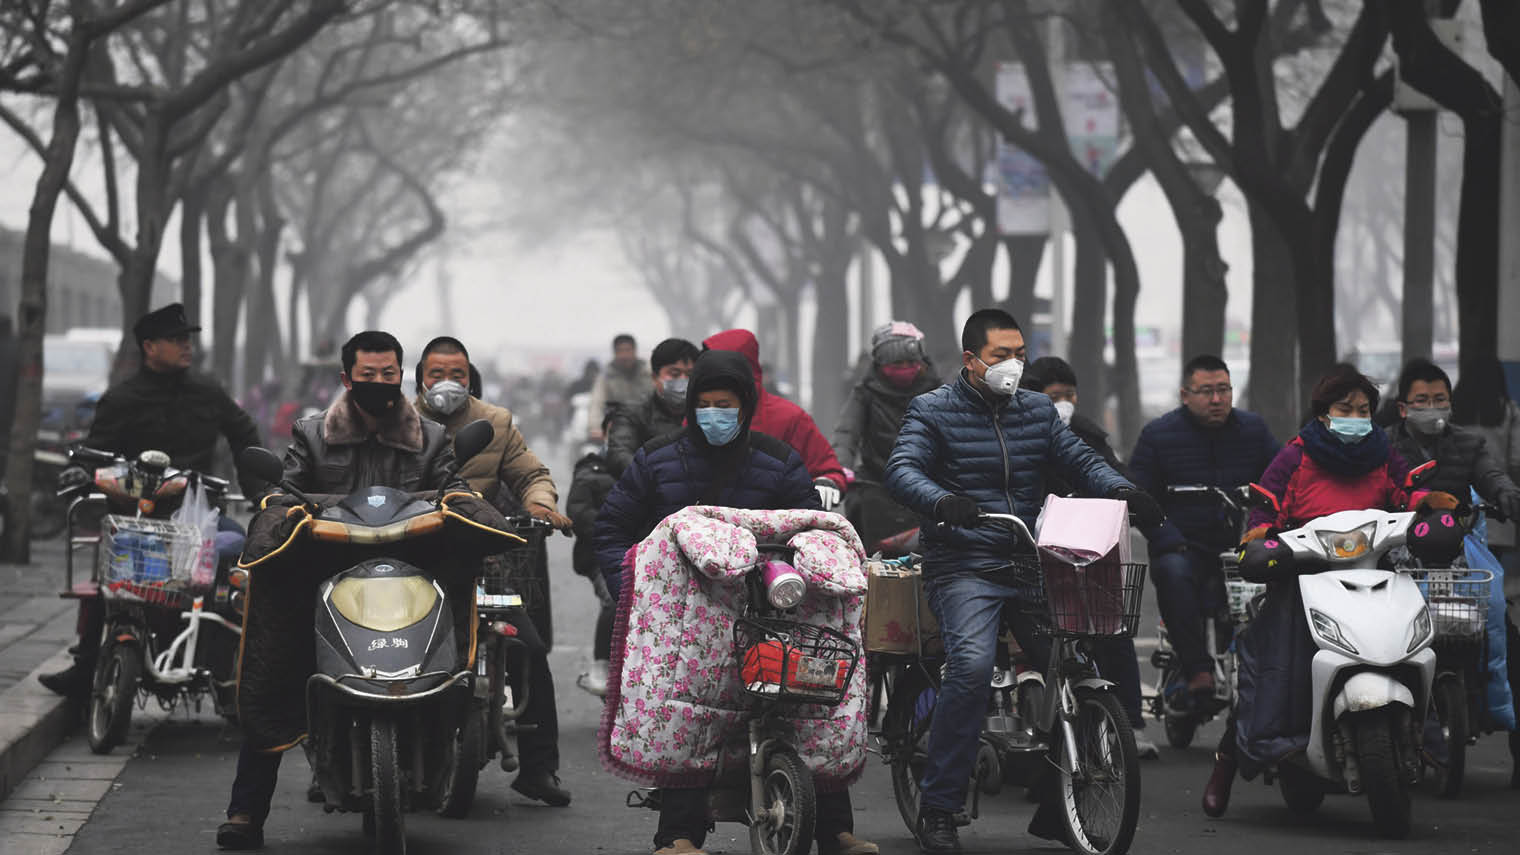 Congestion in Shijiazhuang, where air pollution reached 100 times the recommended level last December